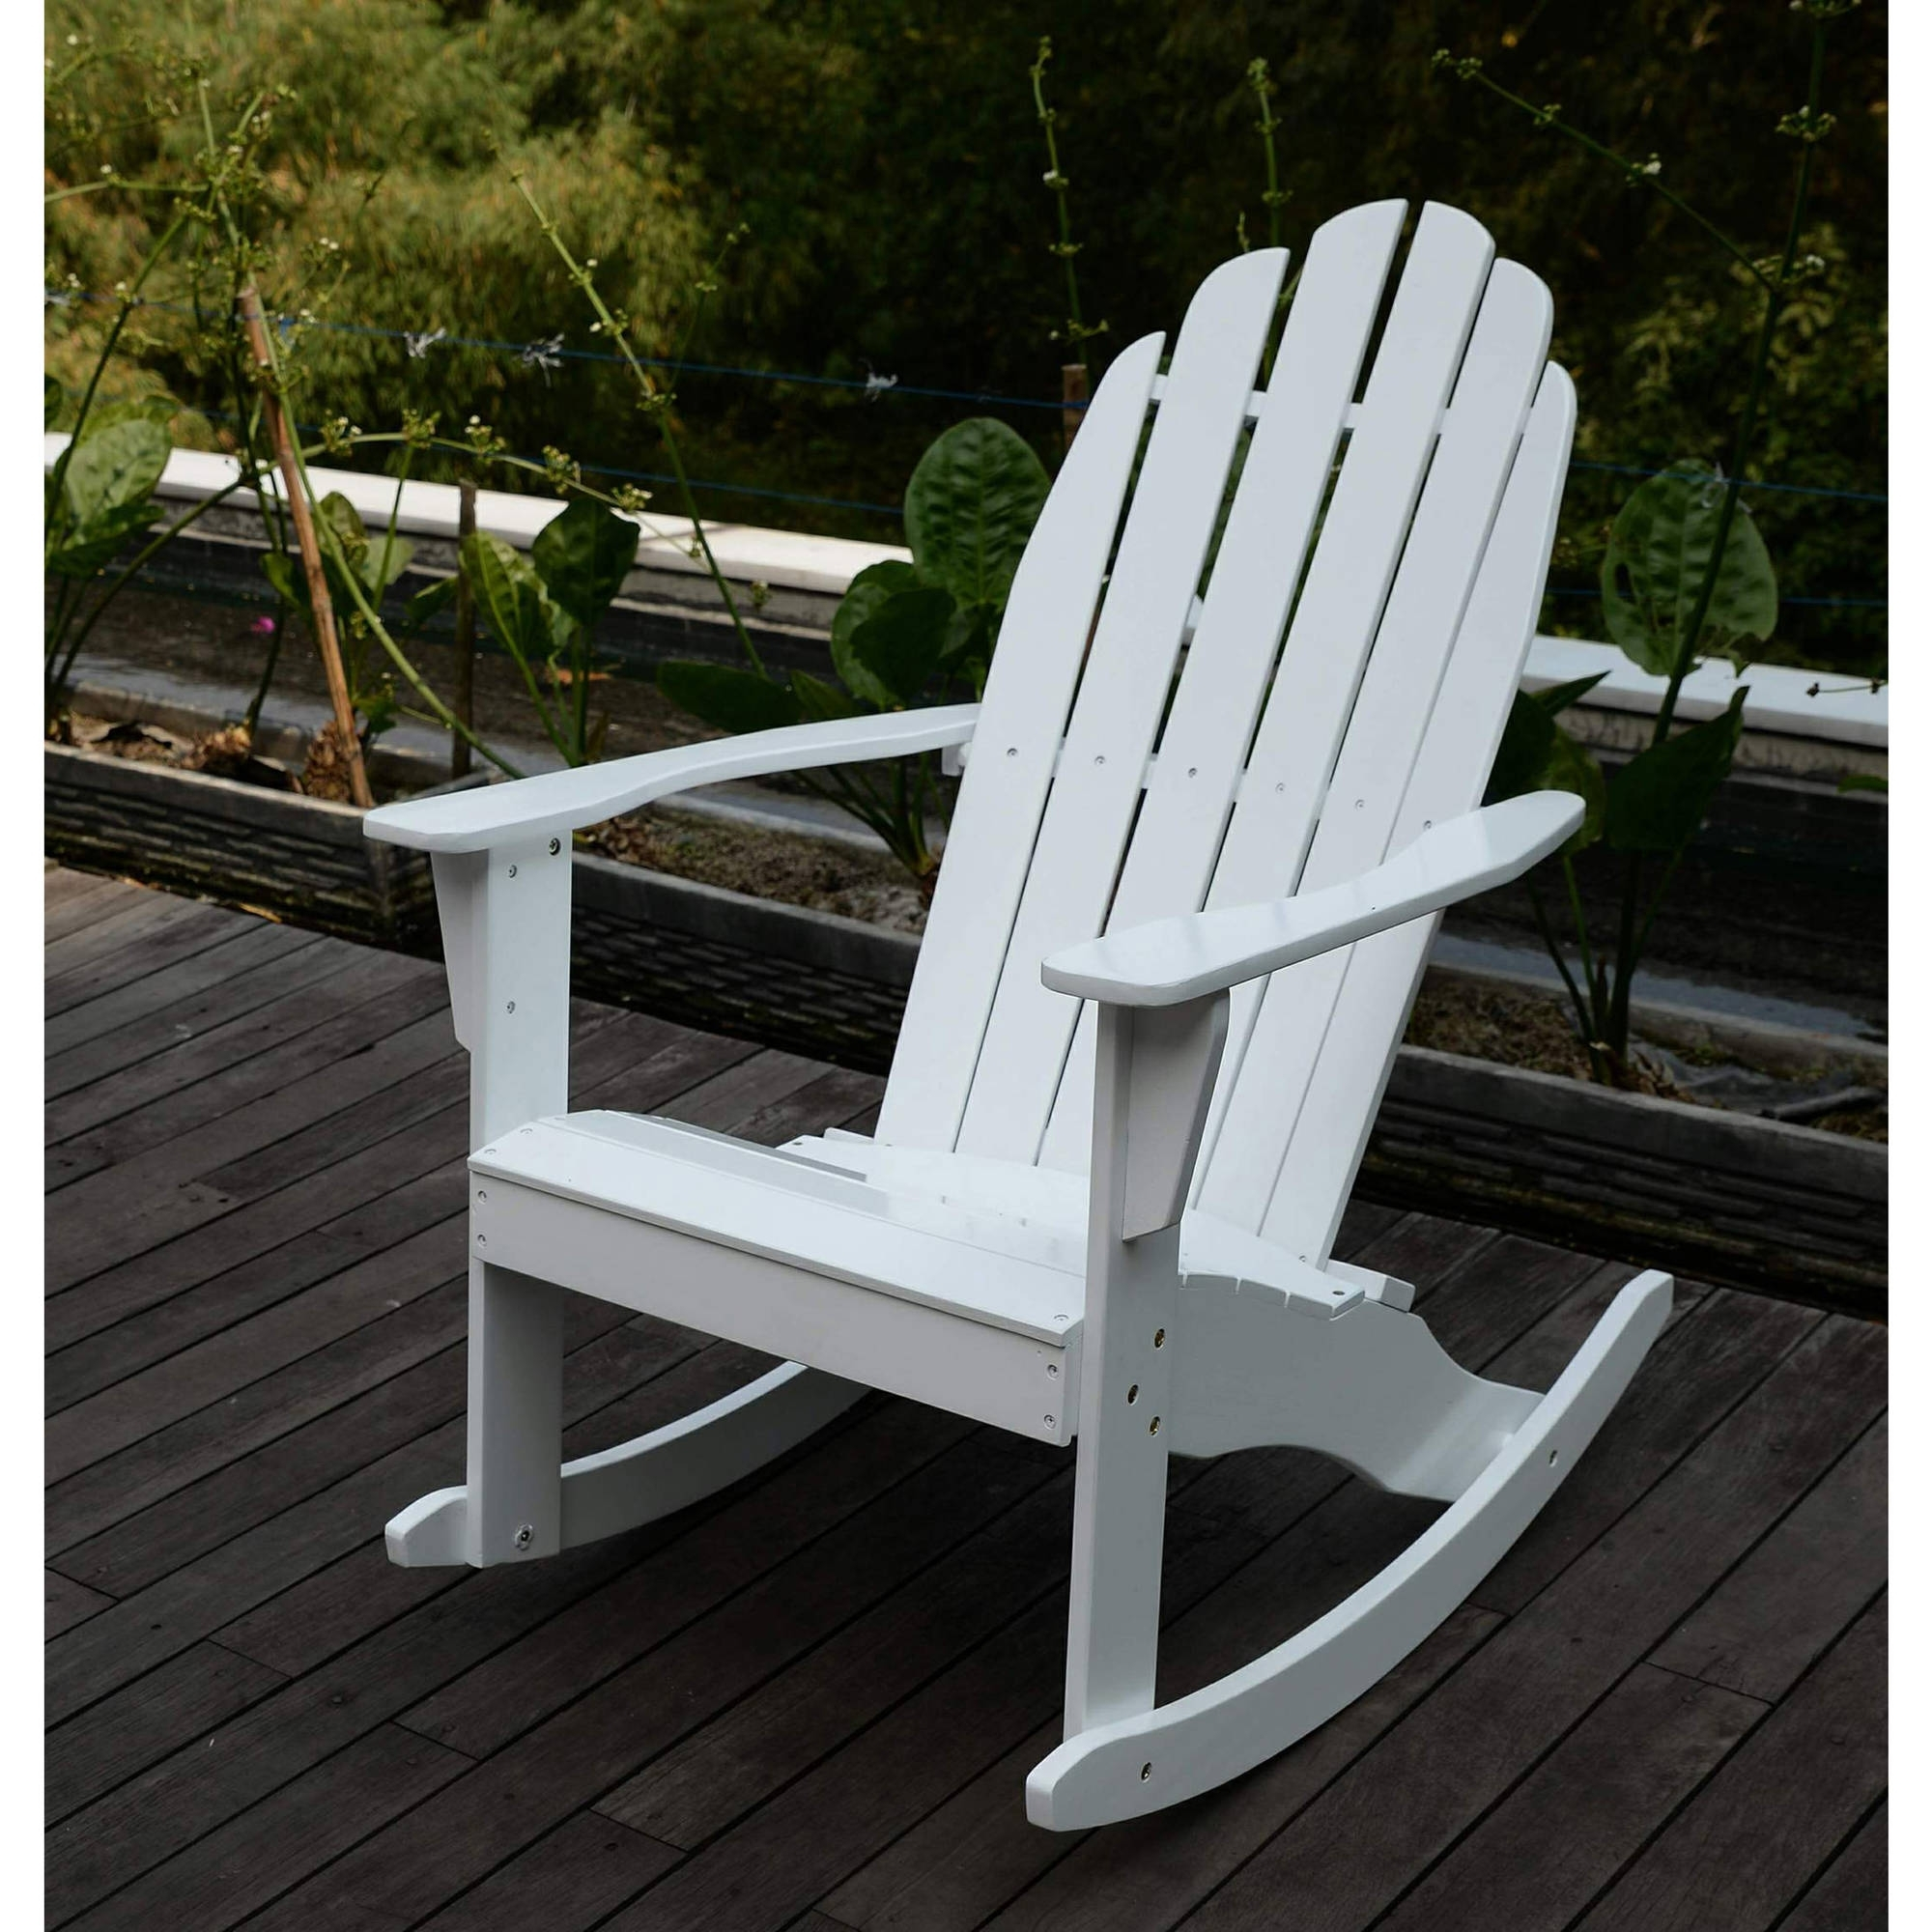 Walmart Rocking Chairs Intended For Well Known Adirondack Rocking Chair, White – Walmart (View 11 of 15)